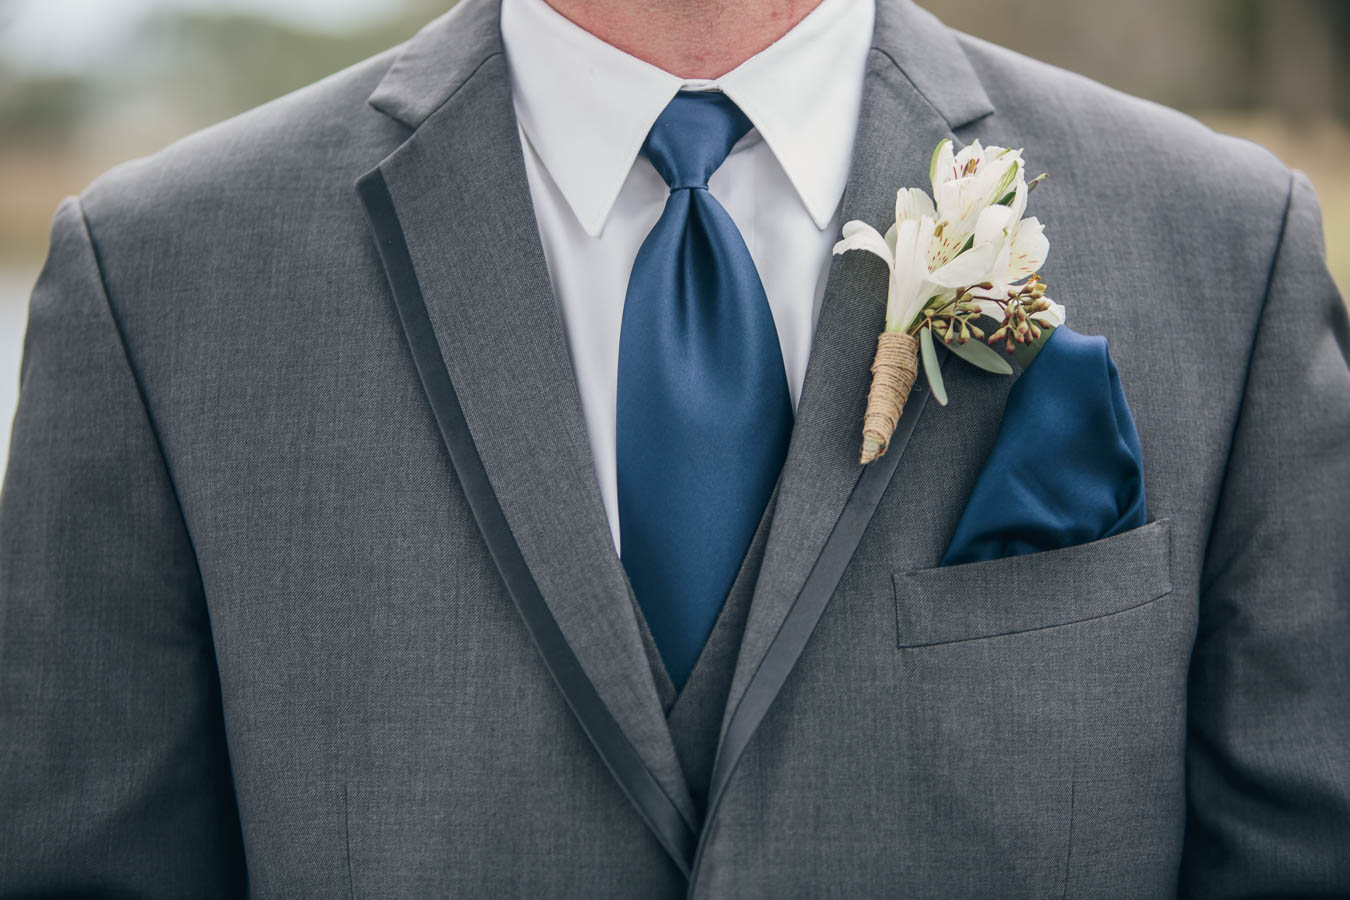 Boutonniere, tie and handkerchief